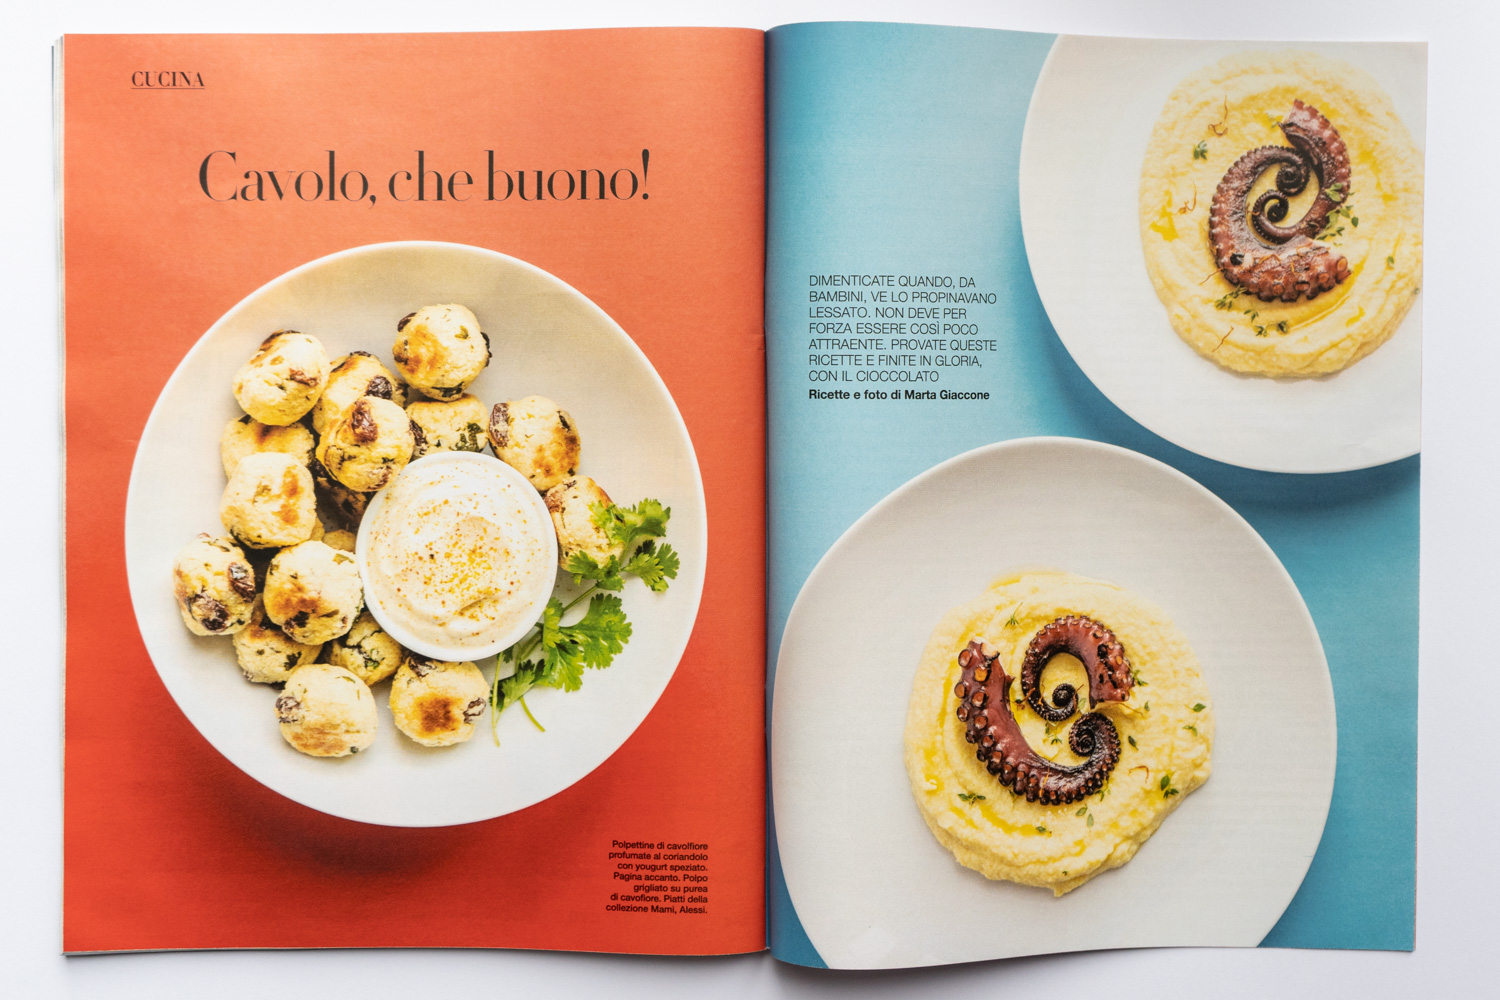 Food editorial on D la Repubblica (Mar 14th, 2020) by Marta Giaccone